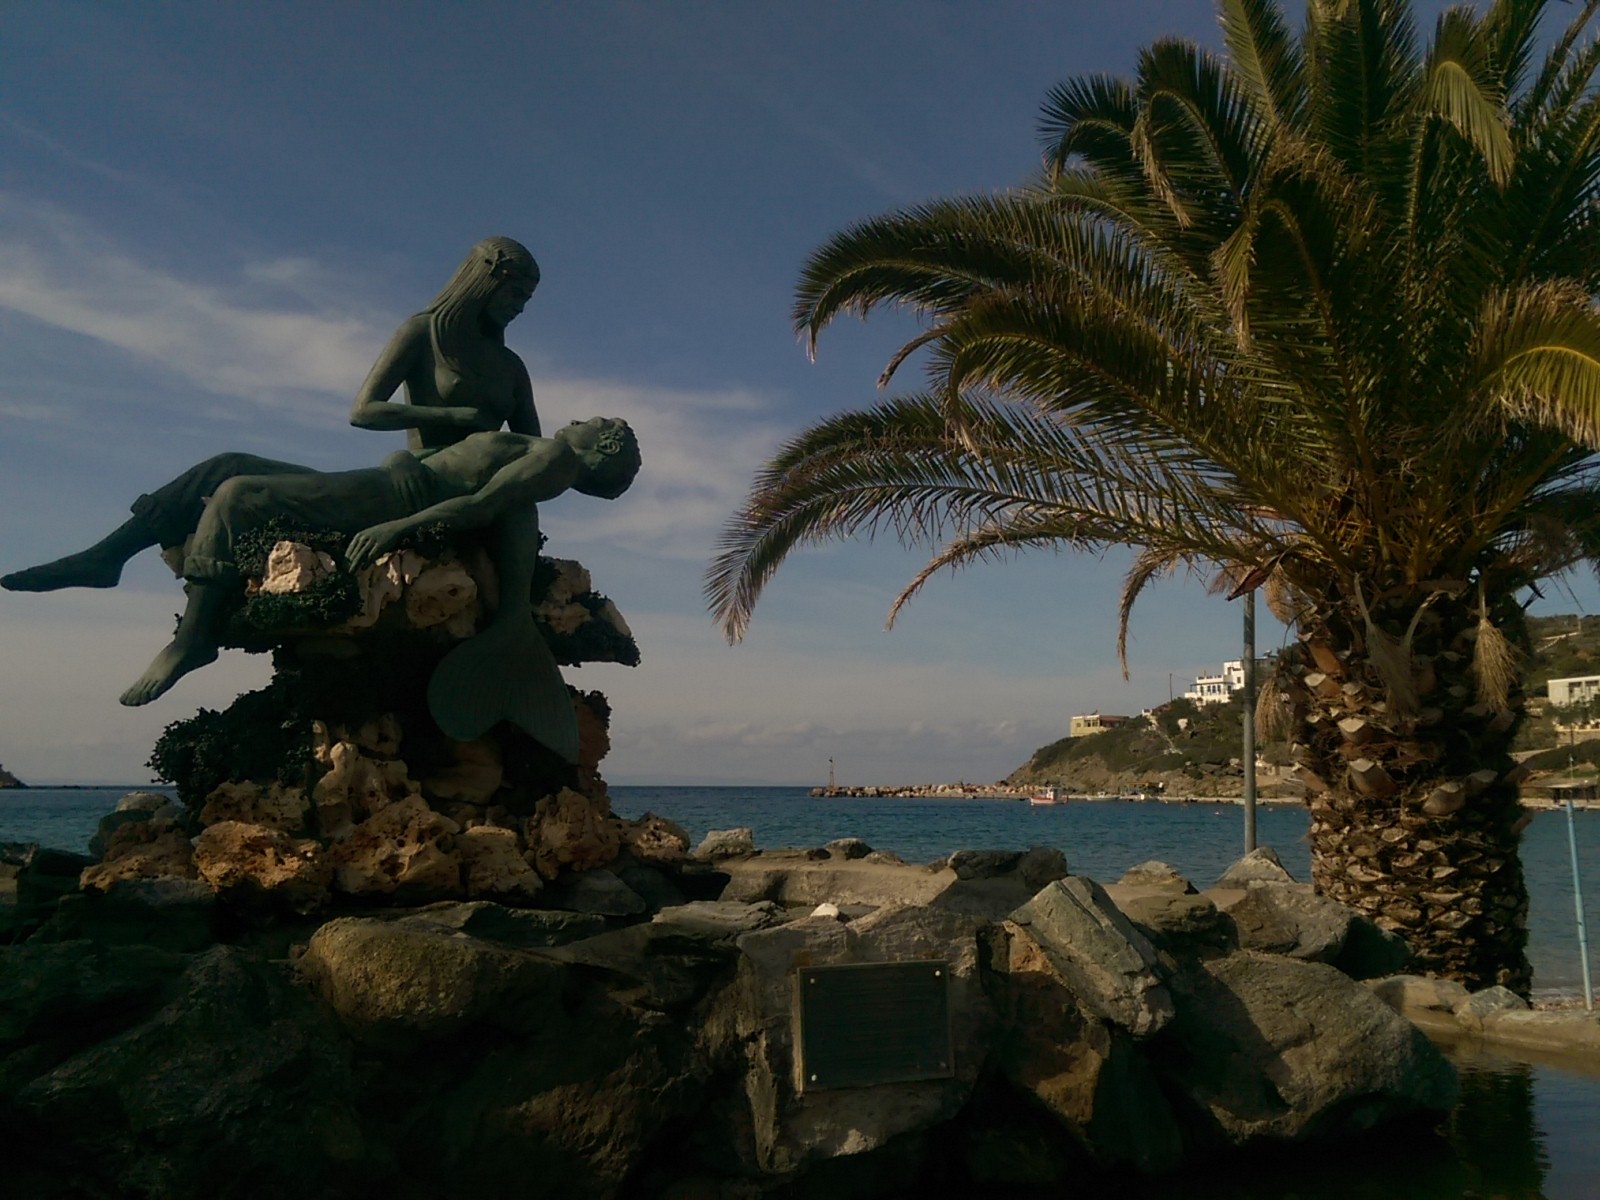 A green statue of a mermaid holding a man beside a palm tree with blue sea in the background